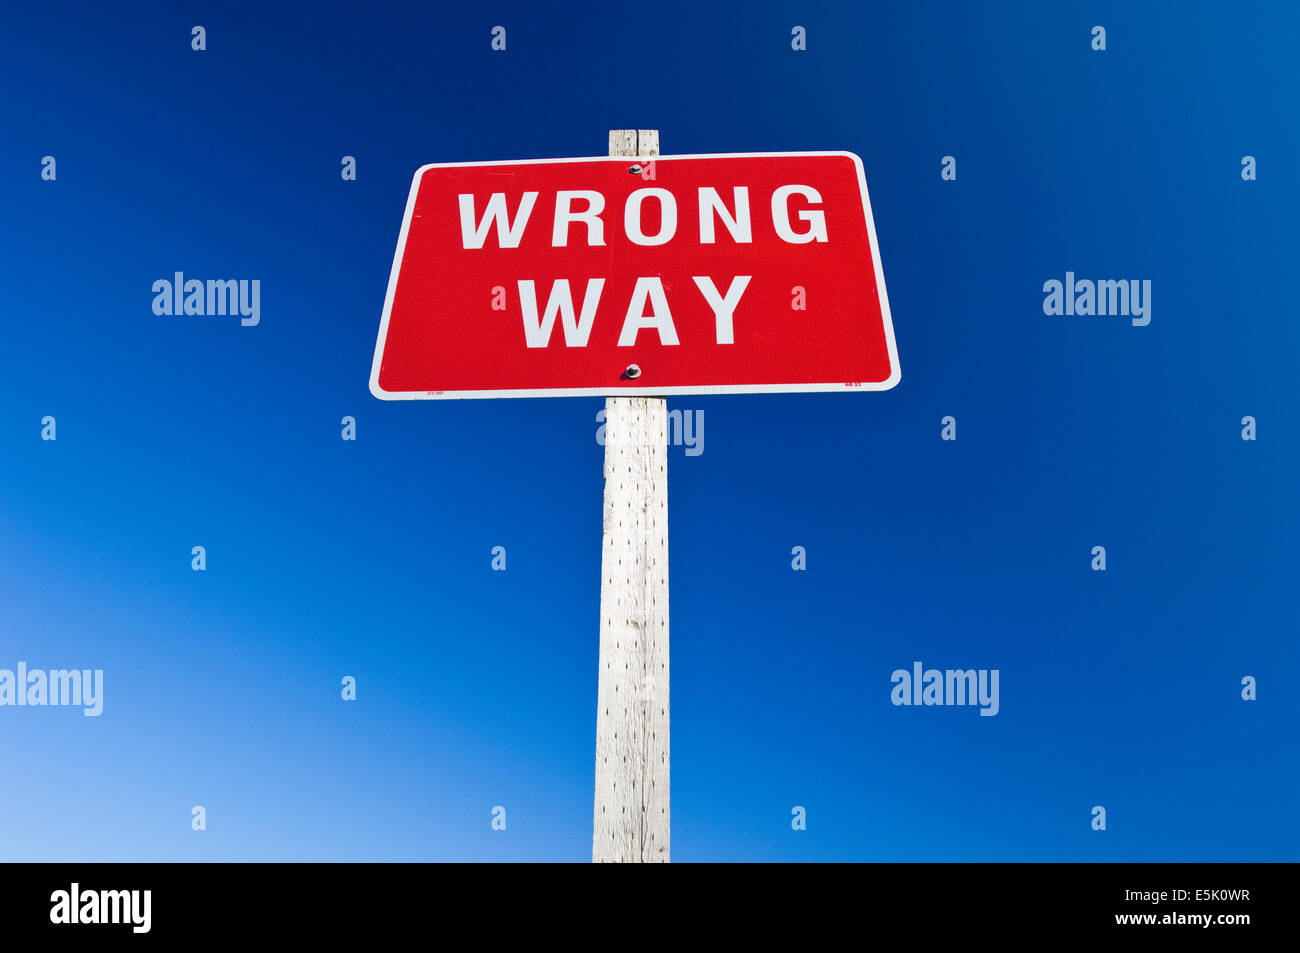 A red Wrong Way road sign against a clear blue - Stock Image